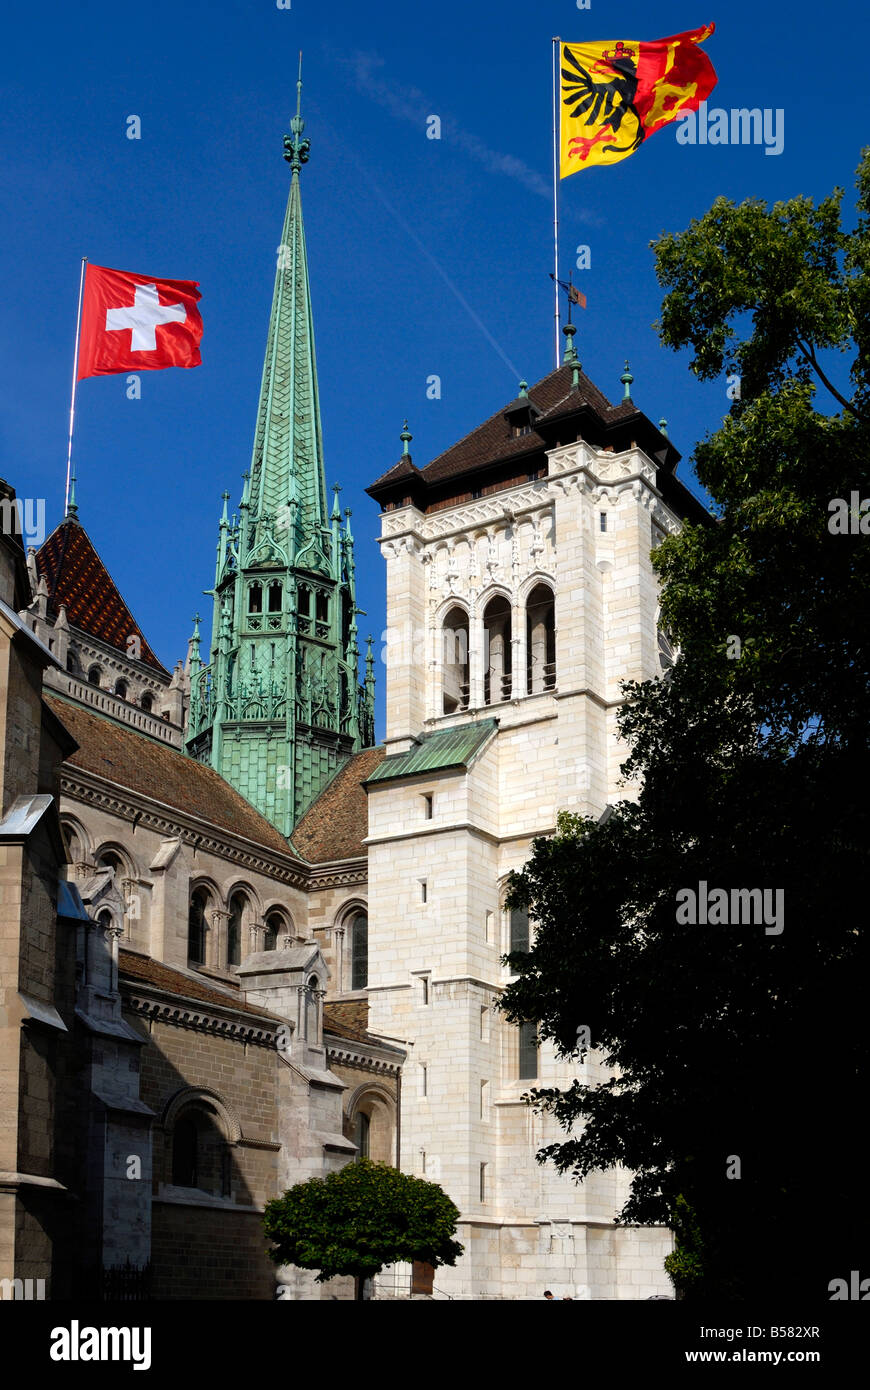 St. Pierre Cathedral, old town, Geneva, Switzerland, Europe - Stock Image